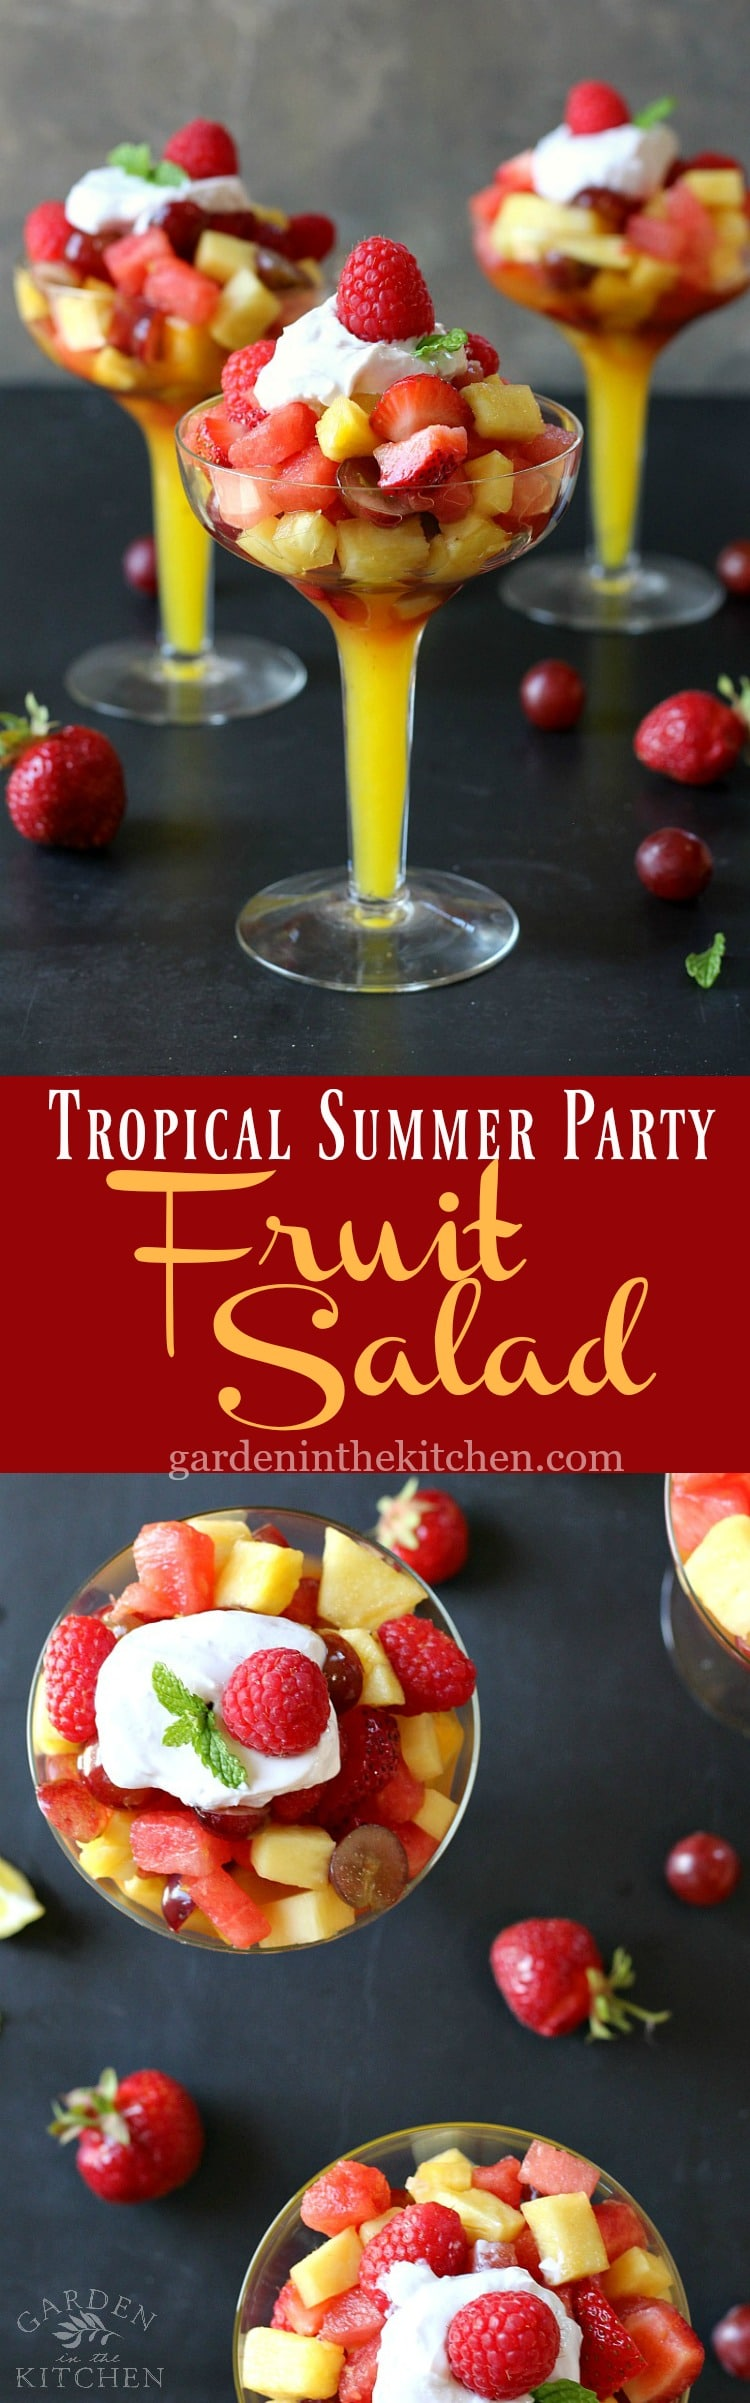 Tropical Summer Party Fruit Salad